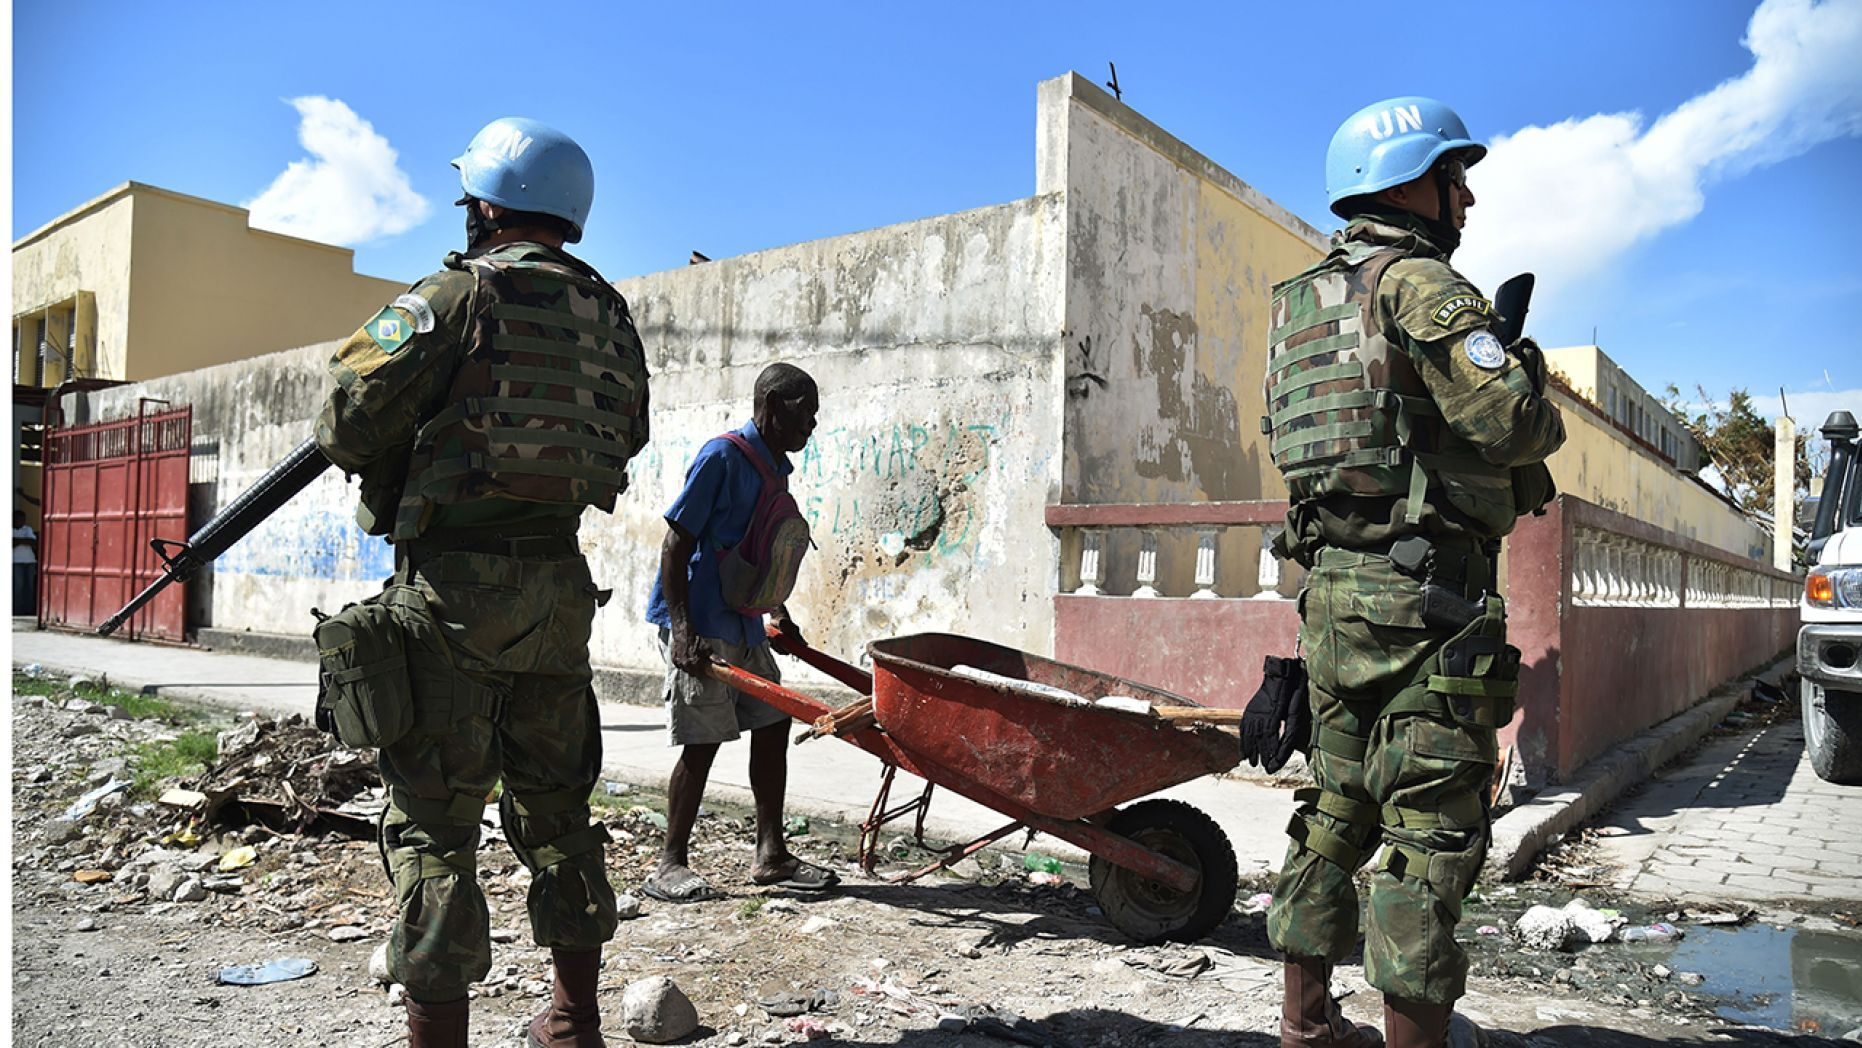 A study claims that UN peacekeepers fathered children with woman and girls in Haiti before abandoning them.